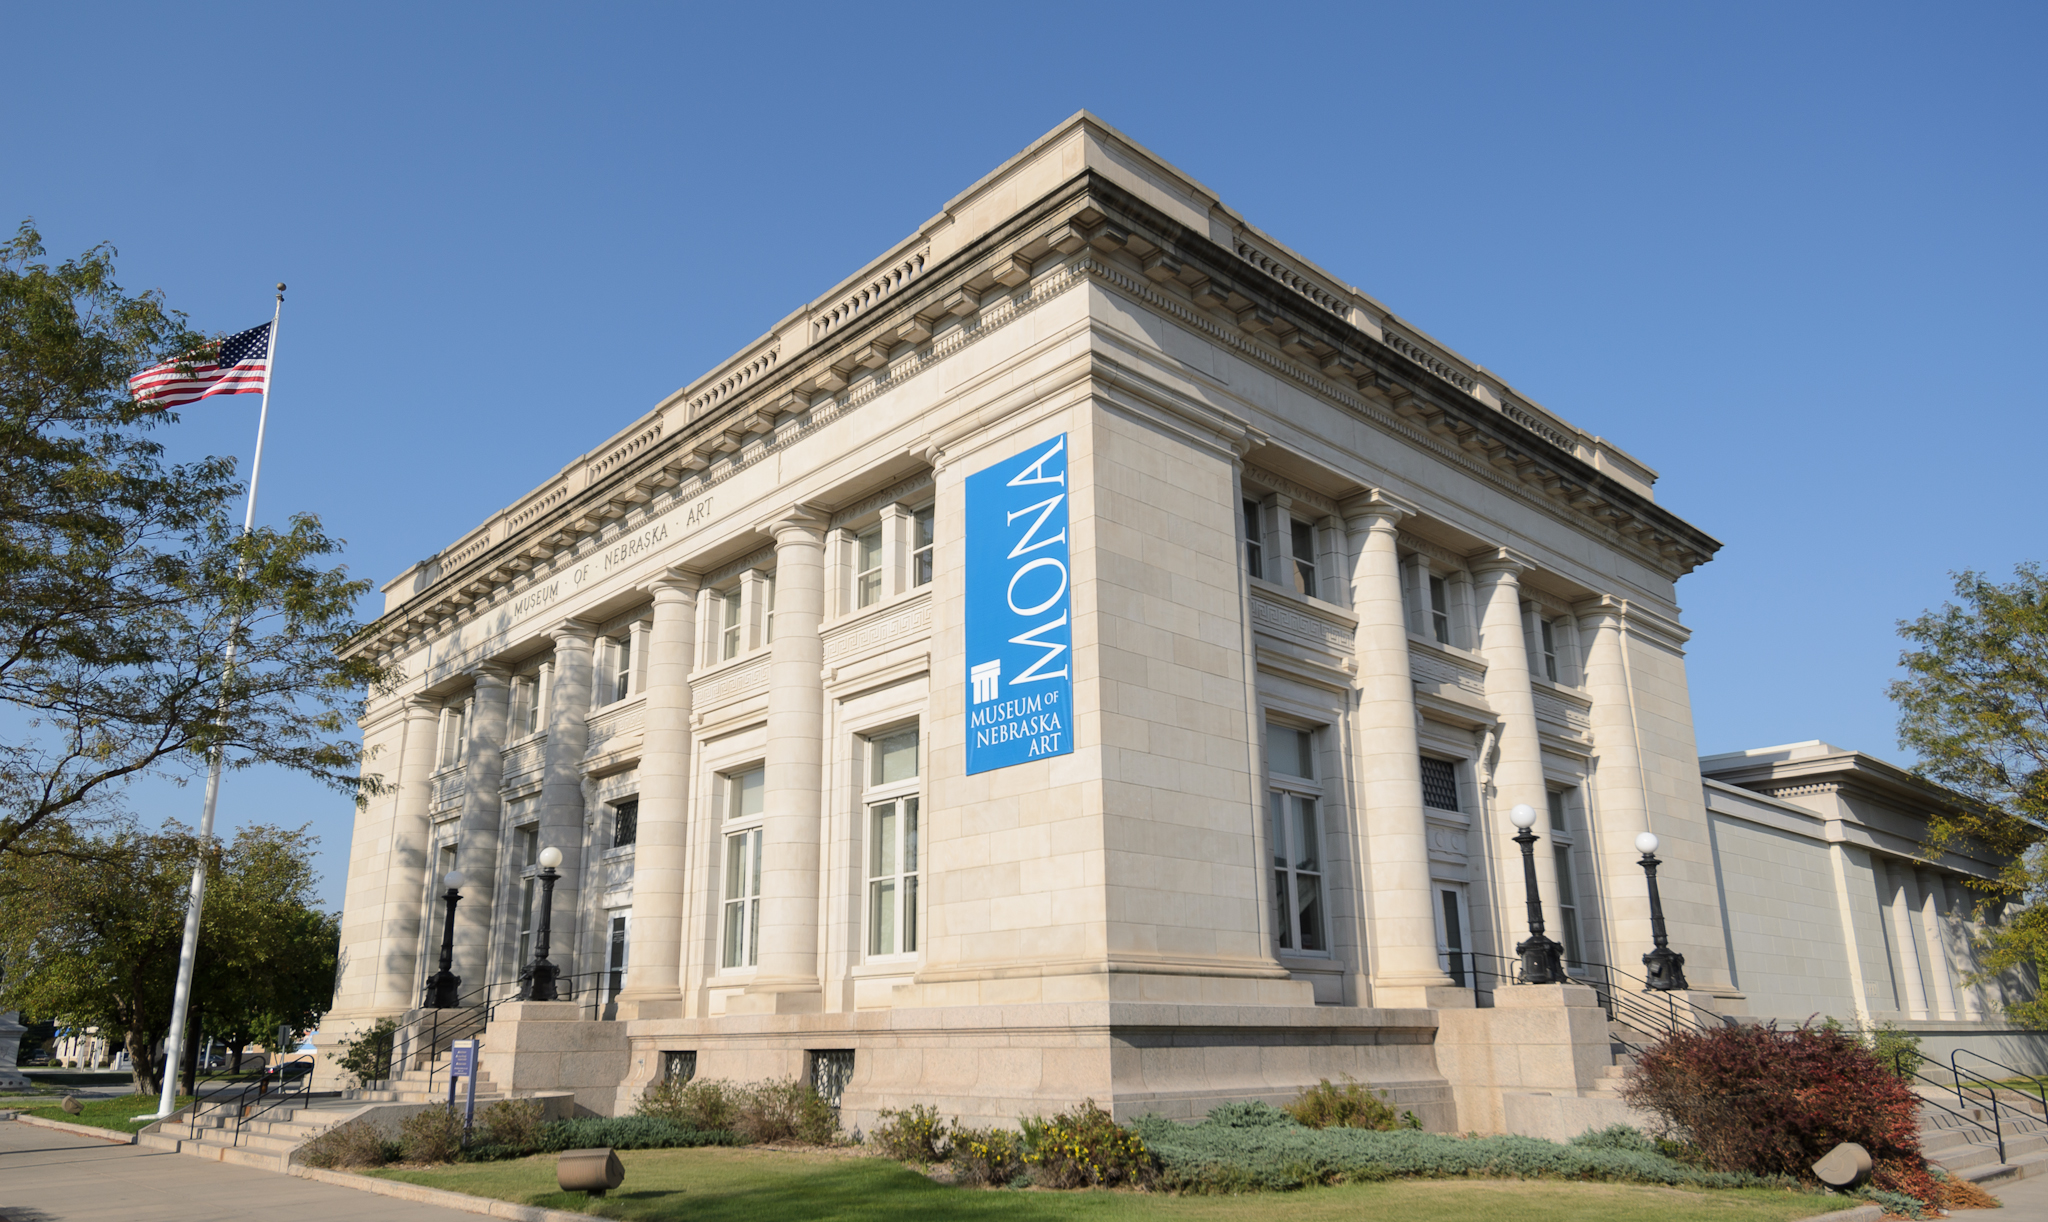 Located in Kearney, this museum holds the state of Nebraska's official art collection.